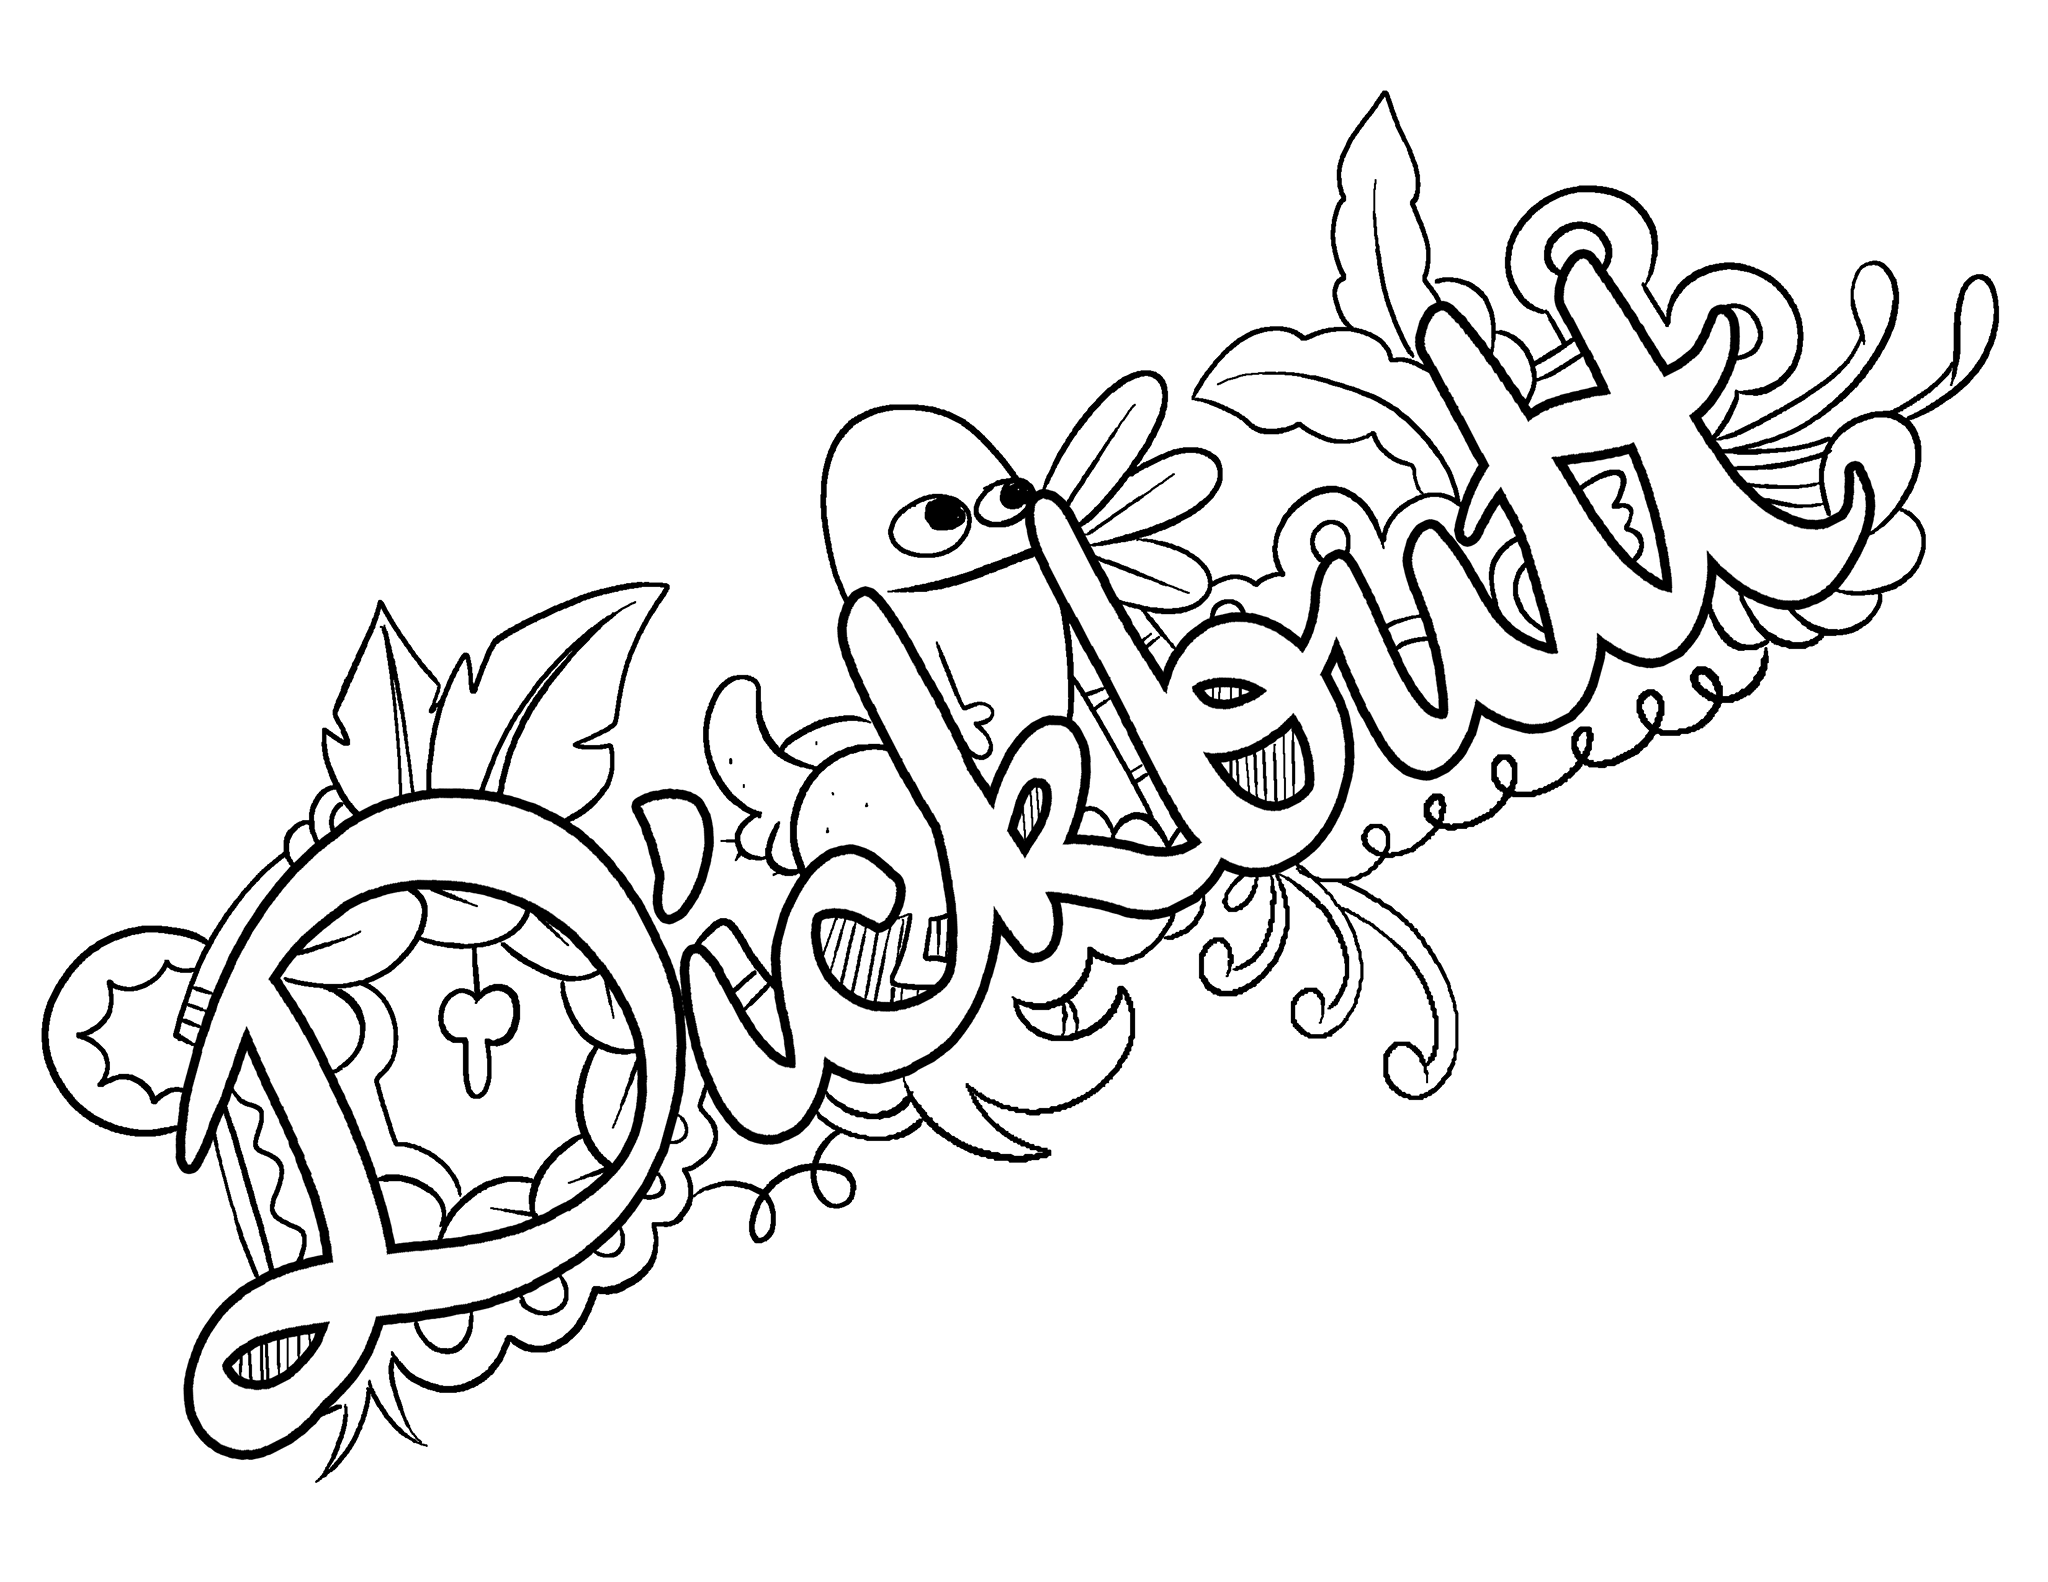 Coloring pages starfish intermediate - Coloring Pages